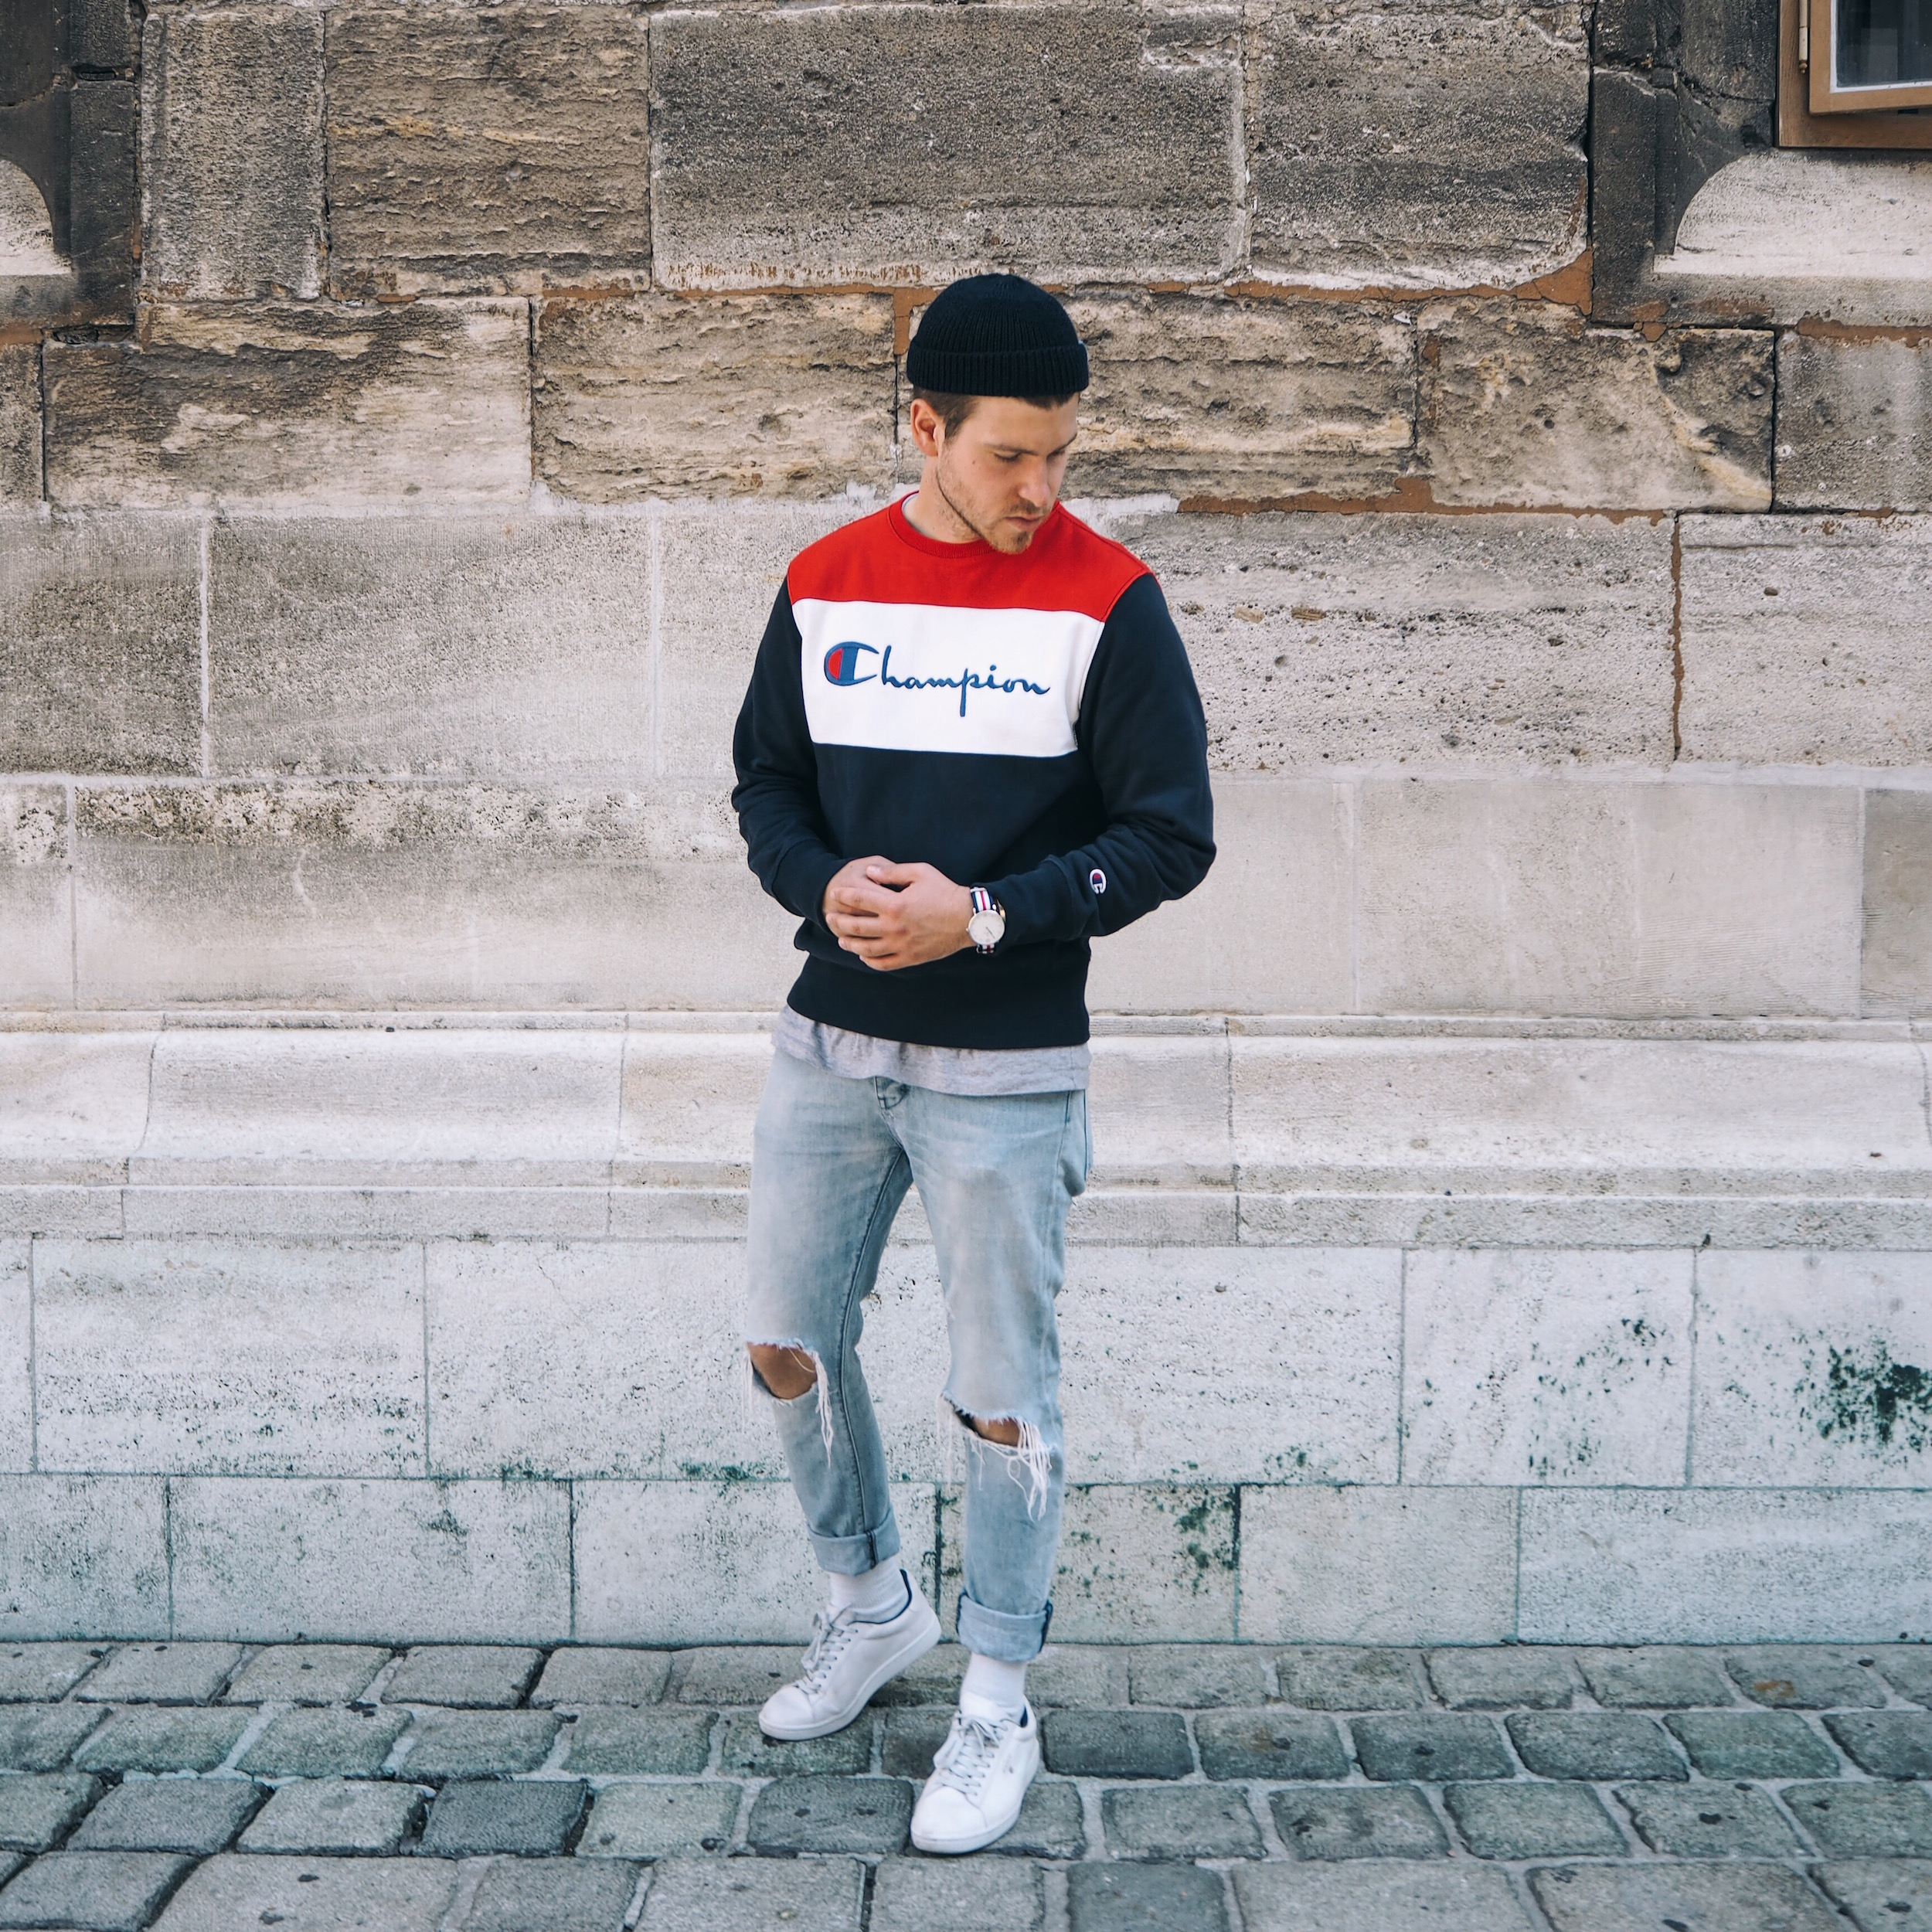 Champion Sports and Urbanwear New Collection Champion Sweater Neuw Denim Ripped Jeans Meanwhile in Awesometown Austrian Mens Fashion and Lifestyle Blog